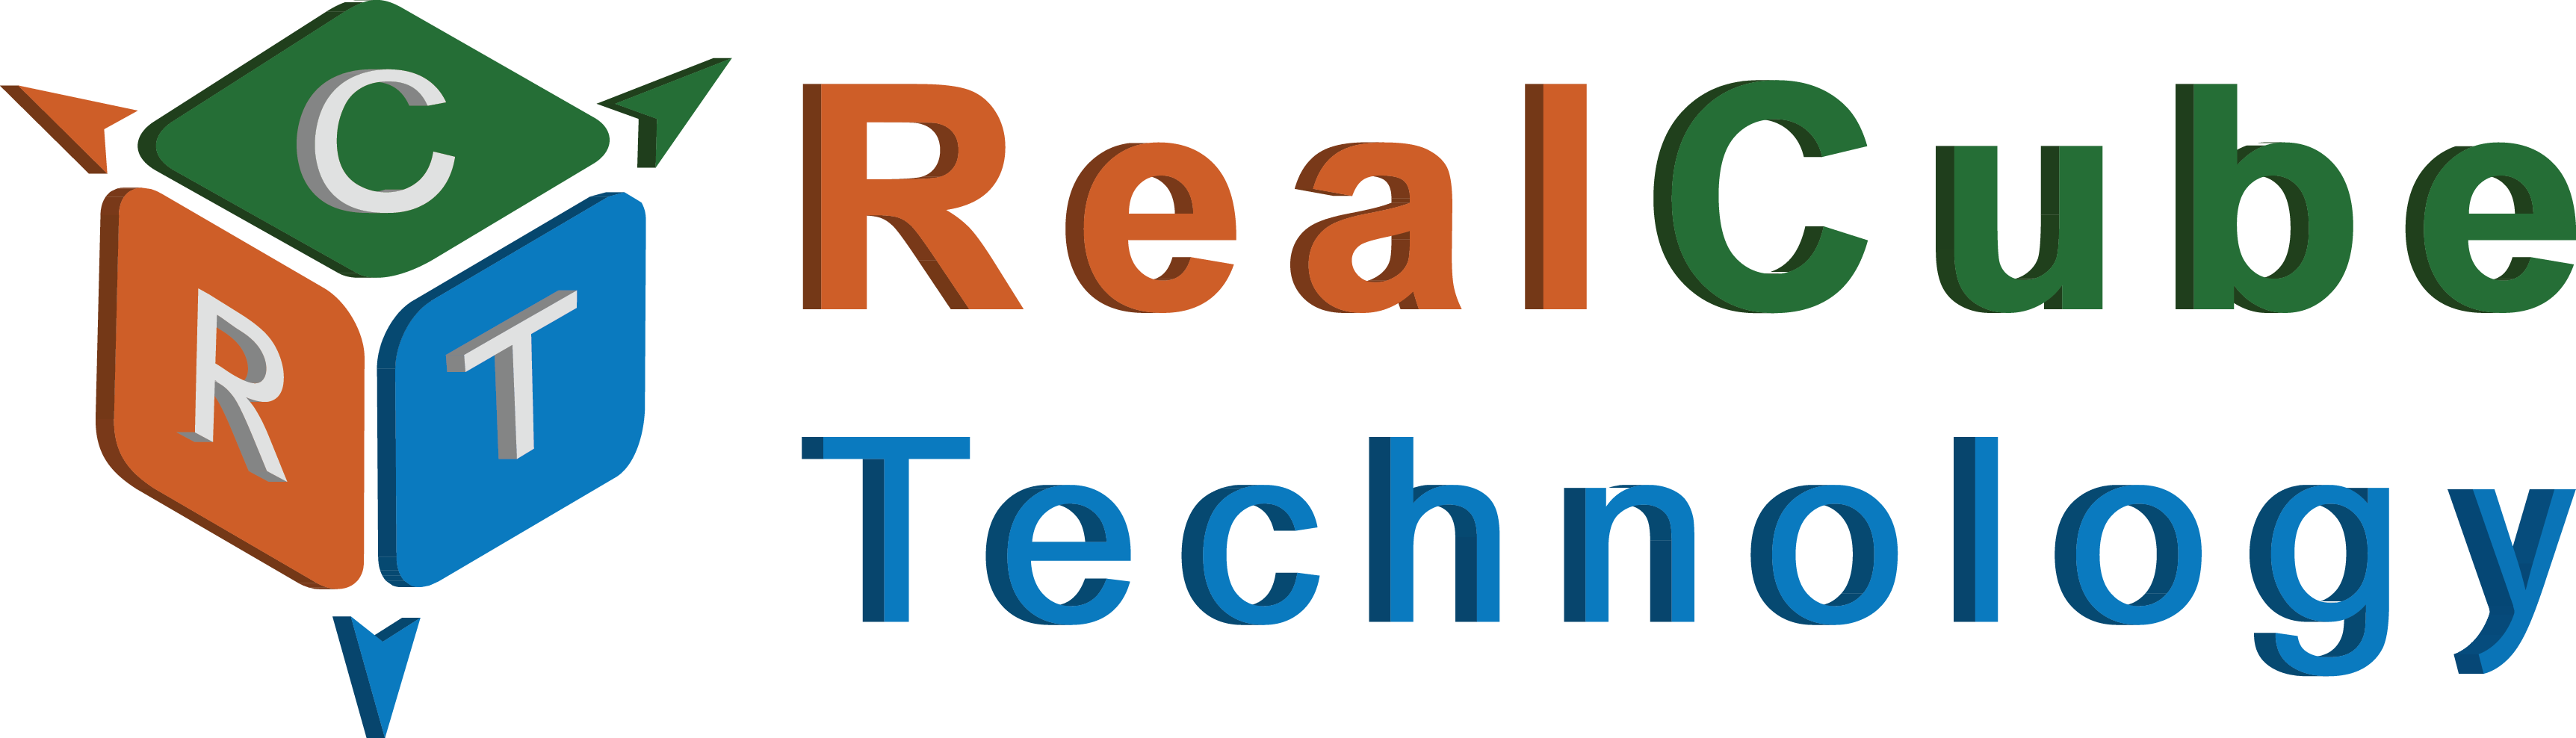 Realcube Technology Inc.